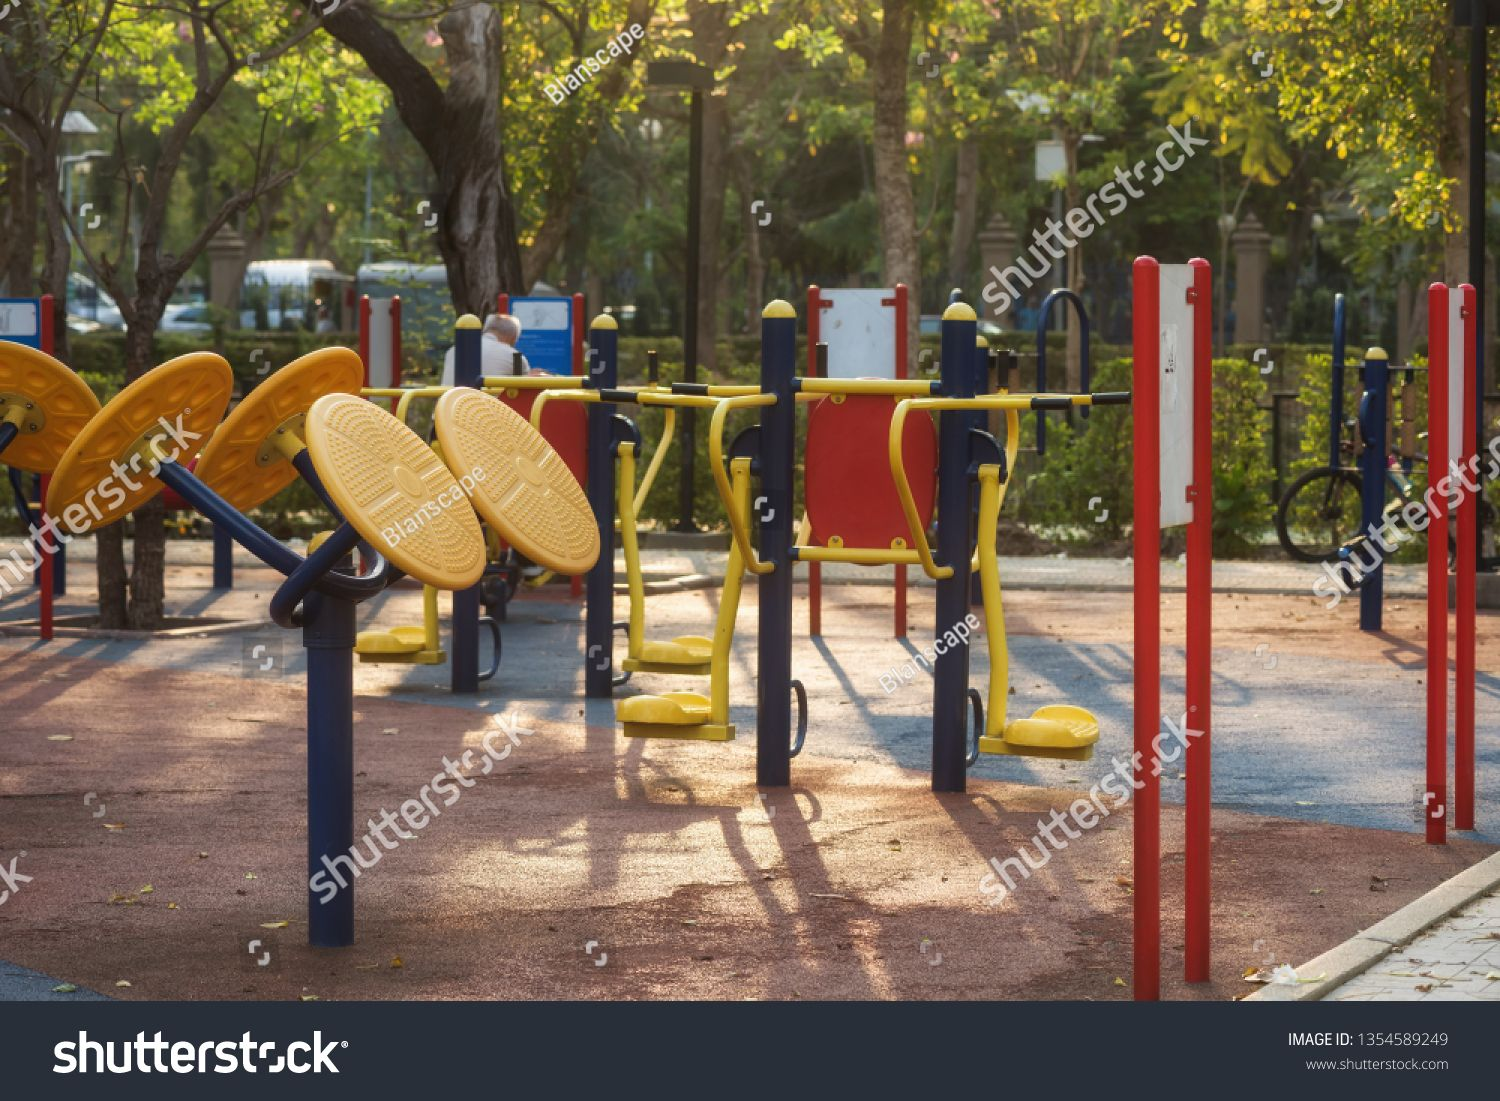 Outdoor Sport Equipments In Public Park At Sunrise With Light And